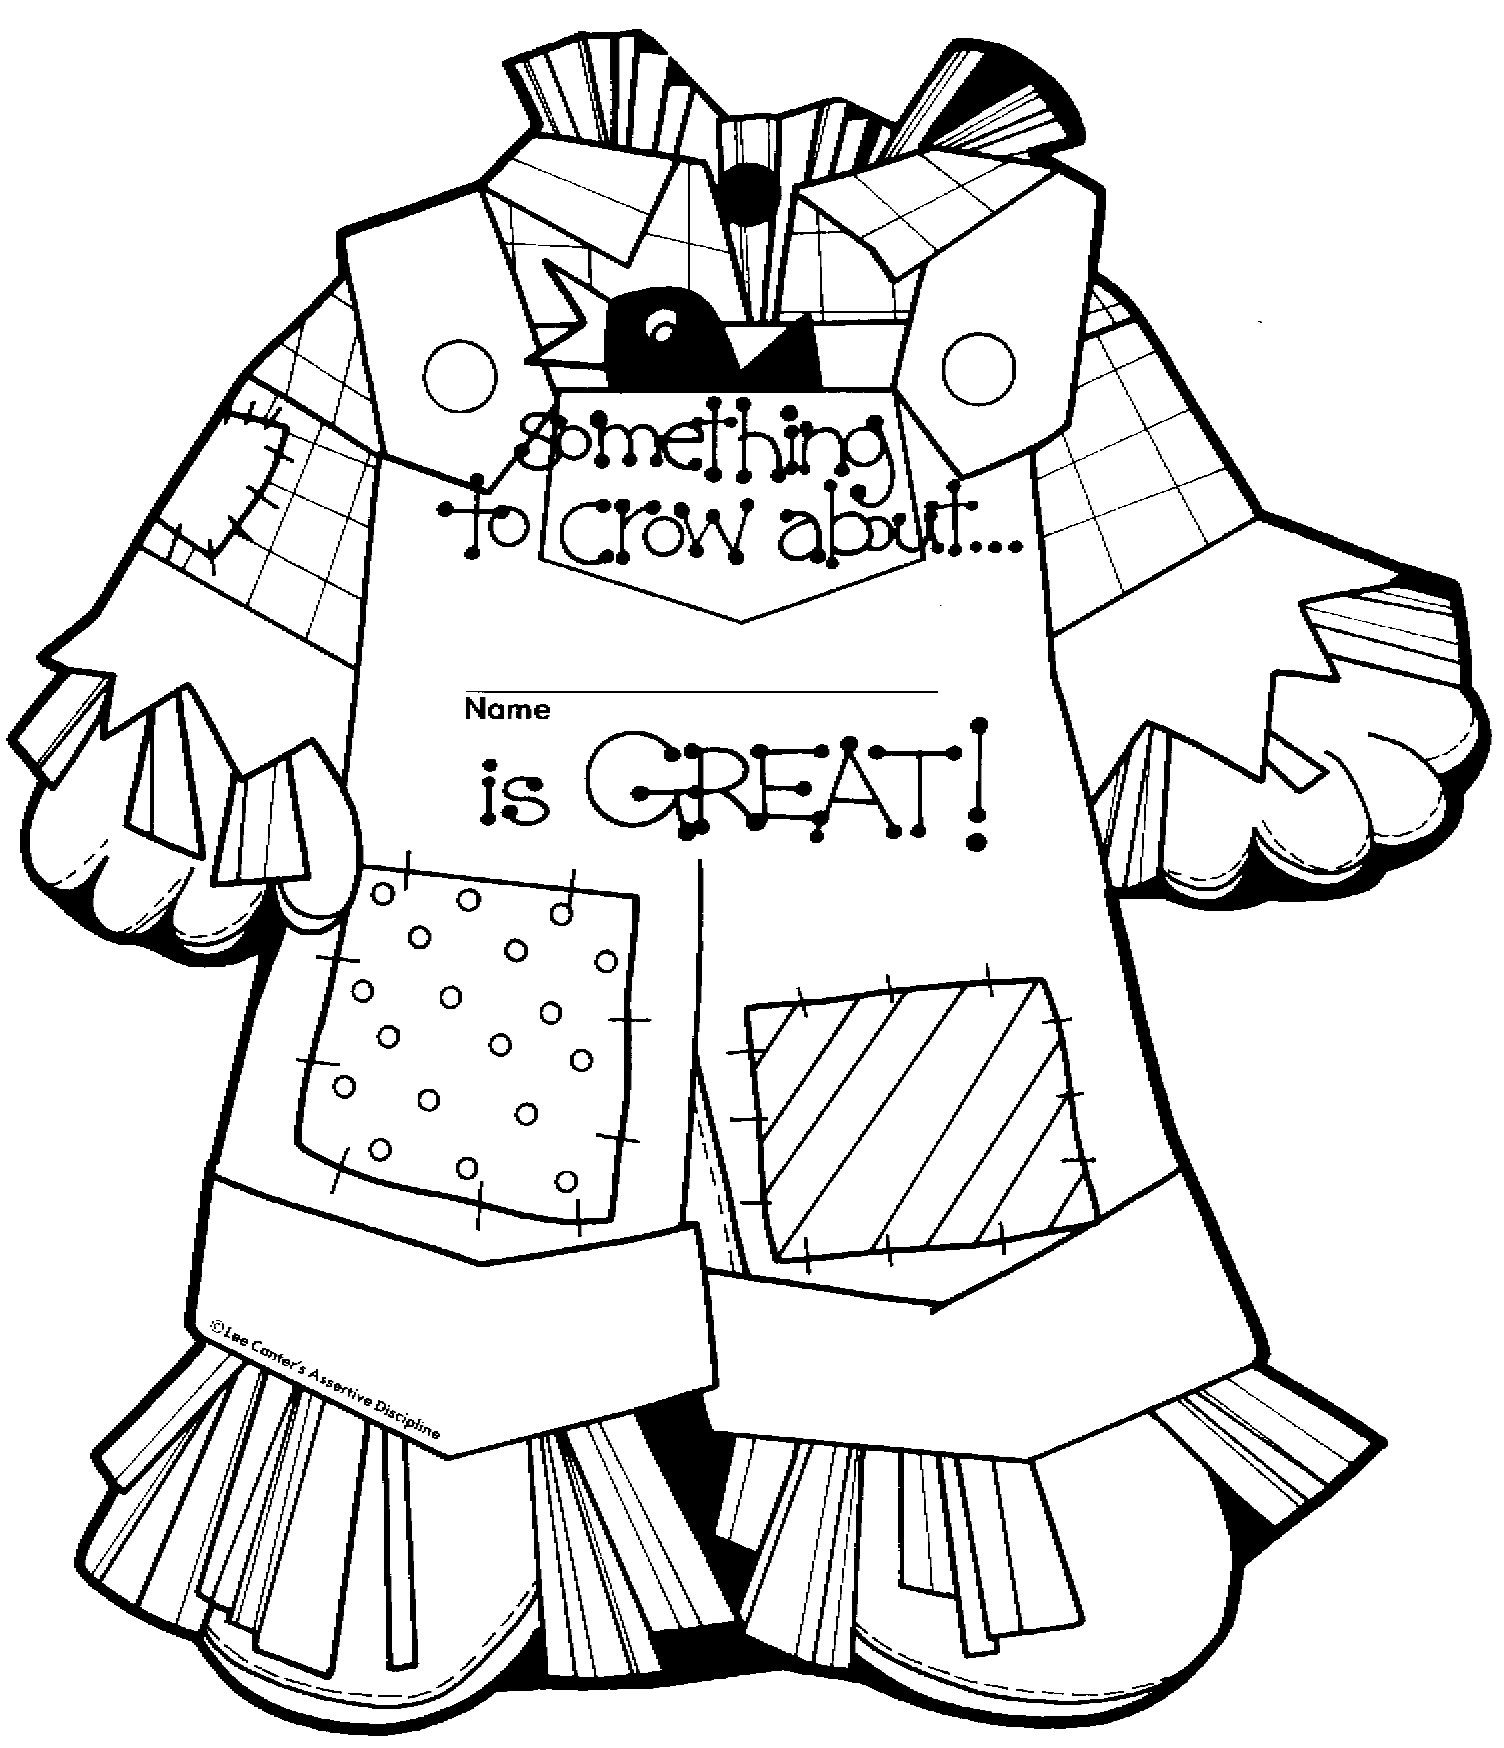 22 Beautiful Image Of Scarecrow Coloring Page Davemelillo Com Scarecrow Crafts Halloween Scarecrow Halloween Coloring Pages